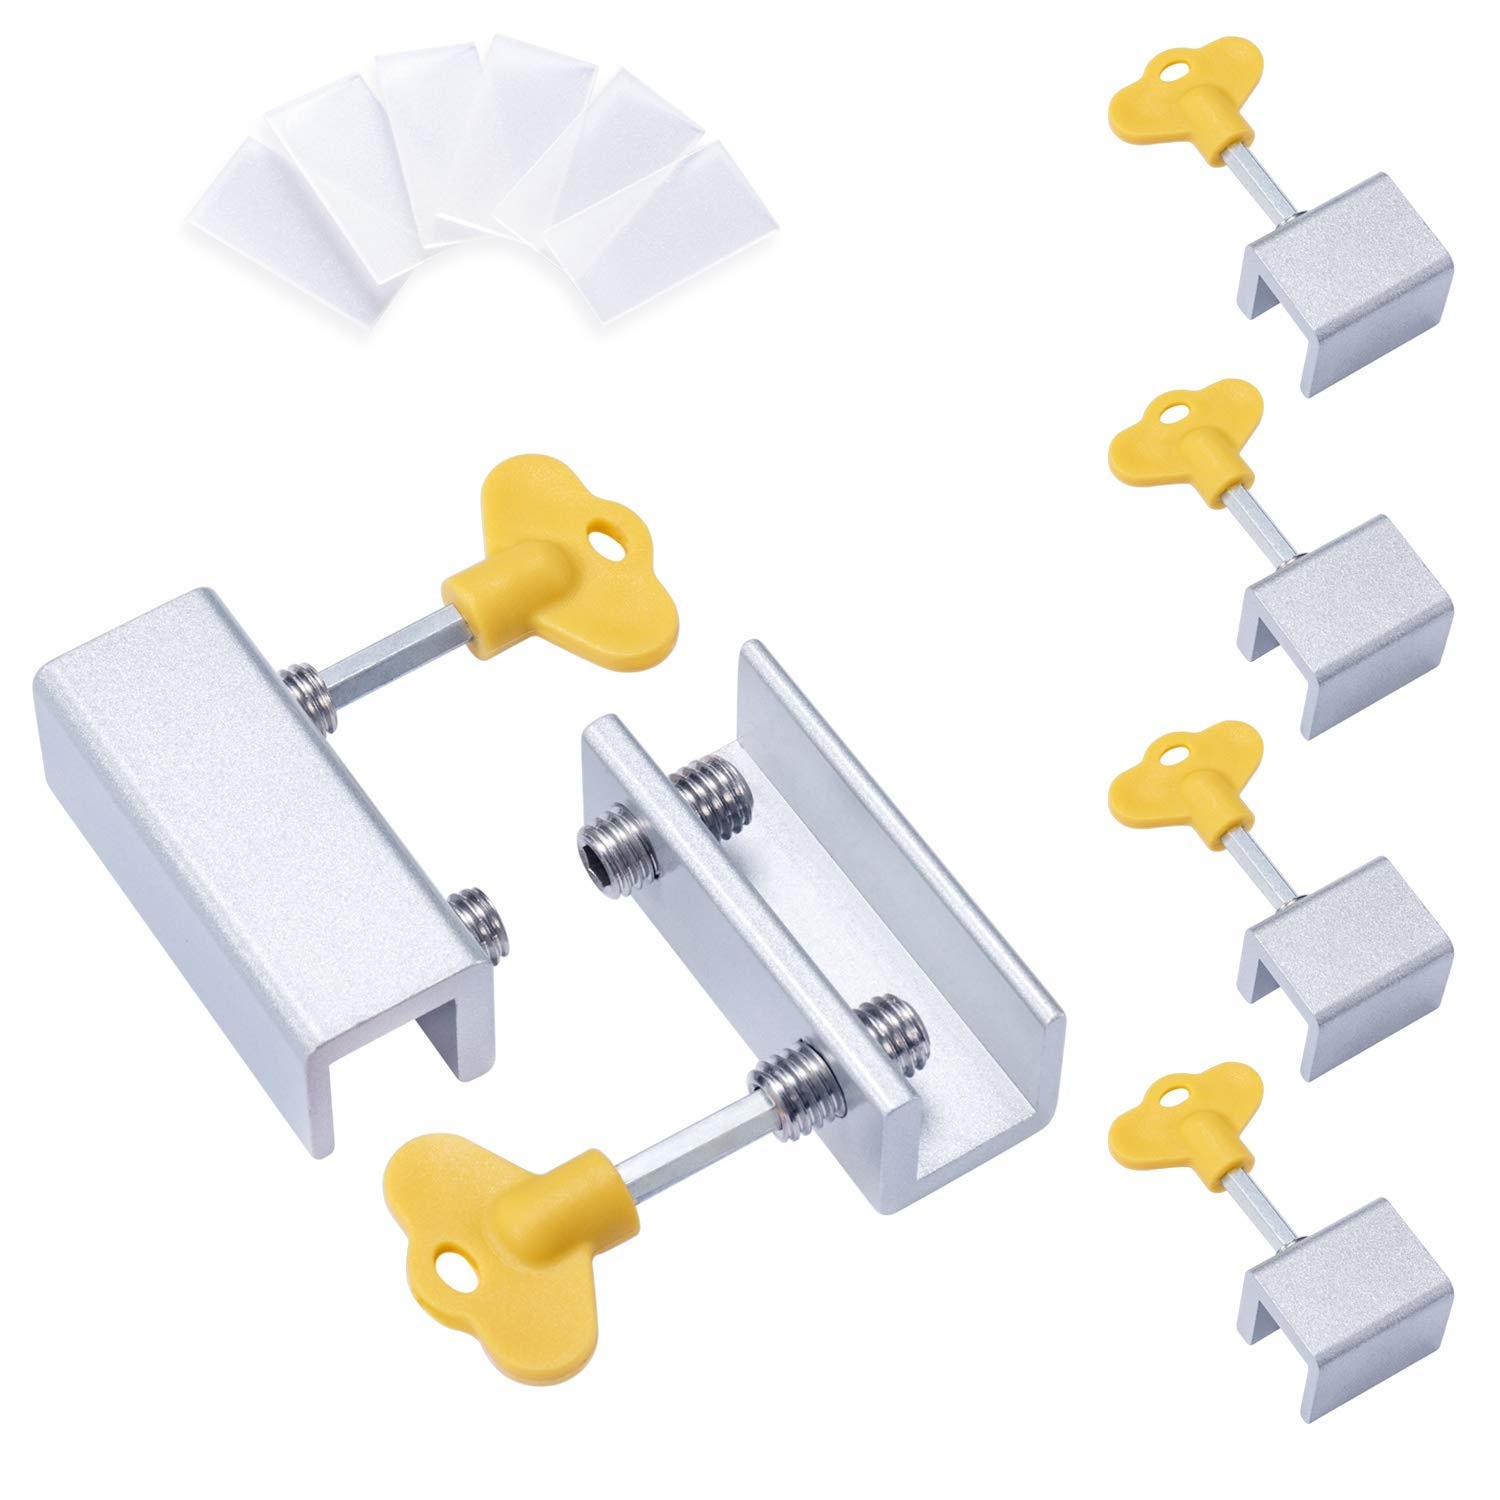 6 Pieces Adjustable Sliding Window Locks Stops Aluminum Alloy Door Frame Security Lock With Keys (4Single Hole And 2Double Hole)6 Pieces Adjustable Sliding Window Locks Stops Aluminum Alloy Door Frame Security Lock With Keys (4Single Hole And 2Double Hole)